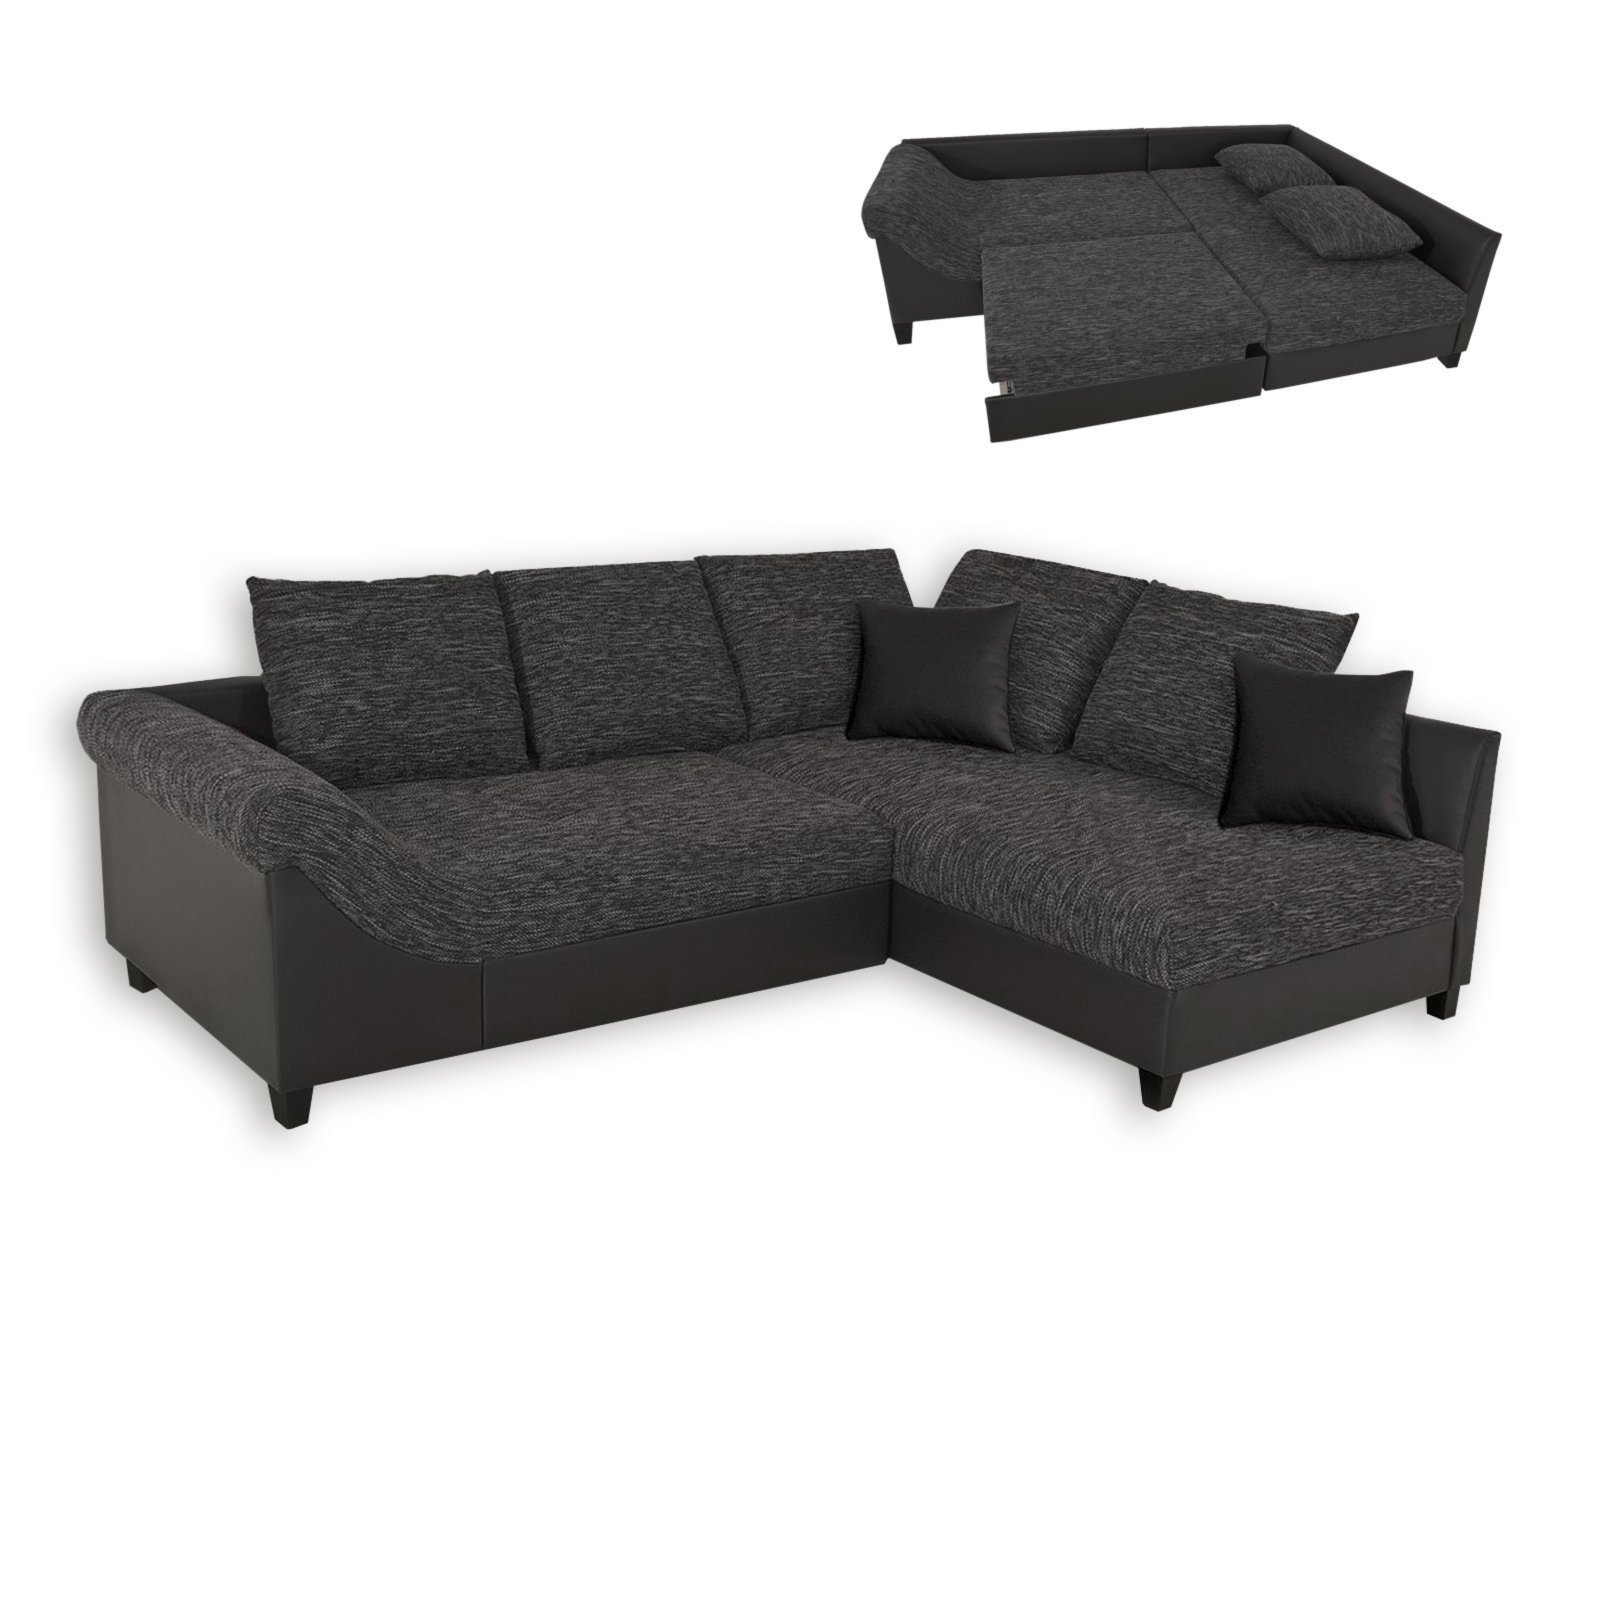 ecksofa grau schwarz. Black Bedroom Furniture Sets. Home Design Ideas